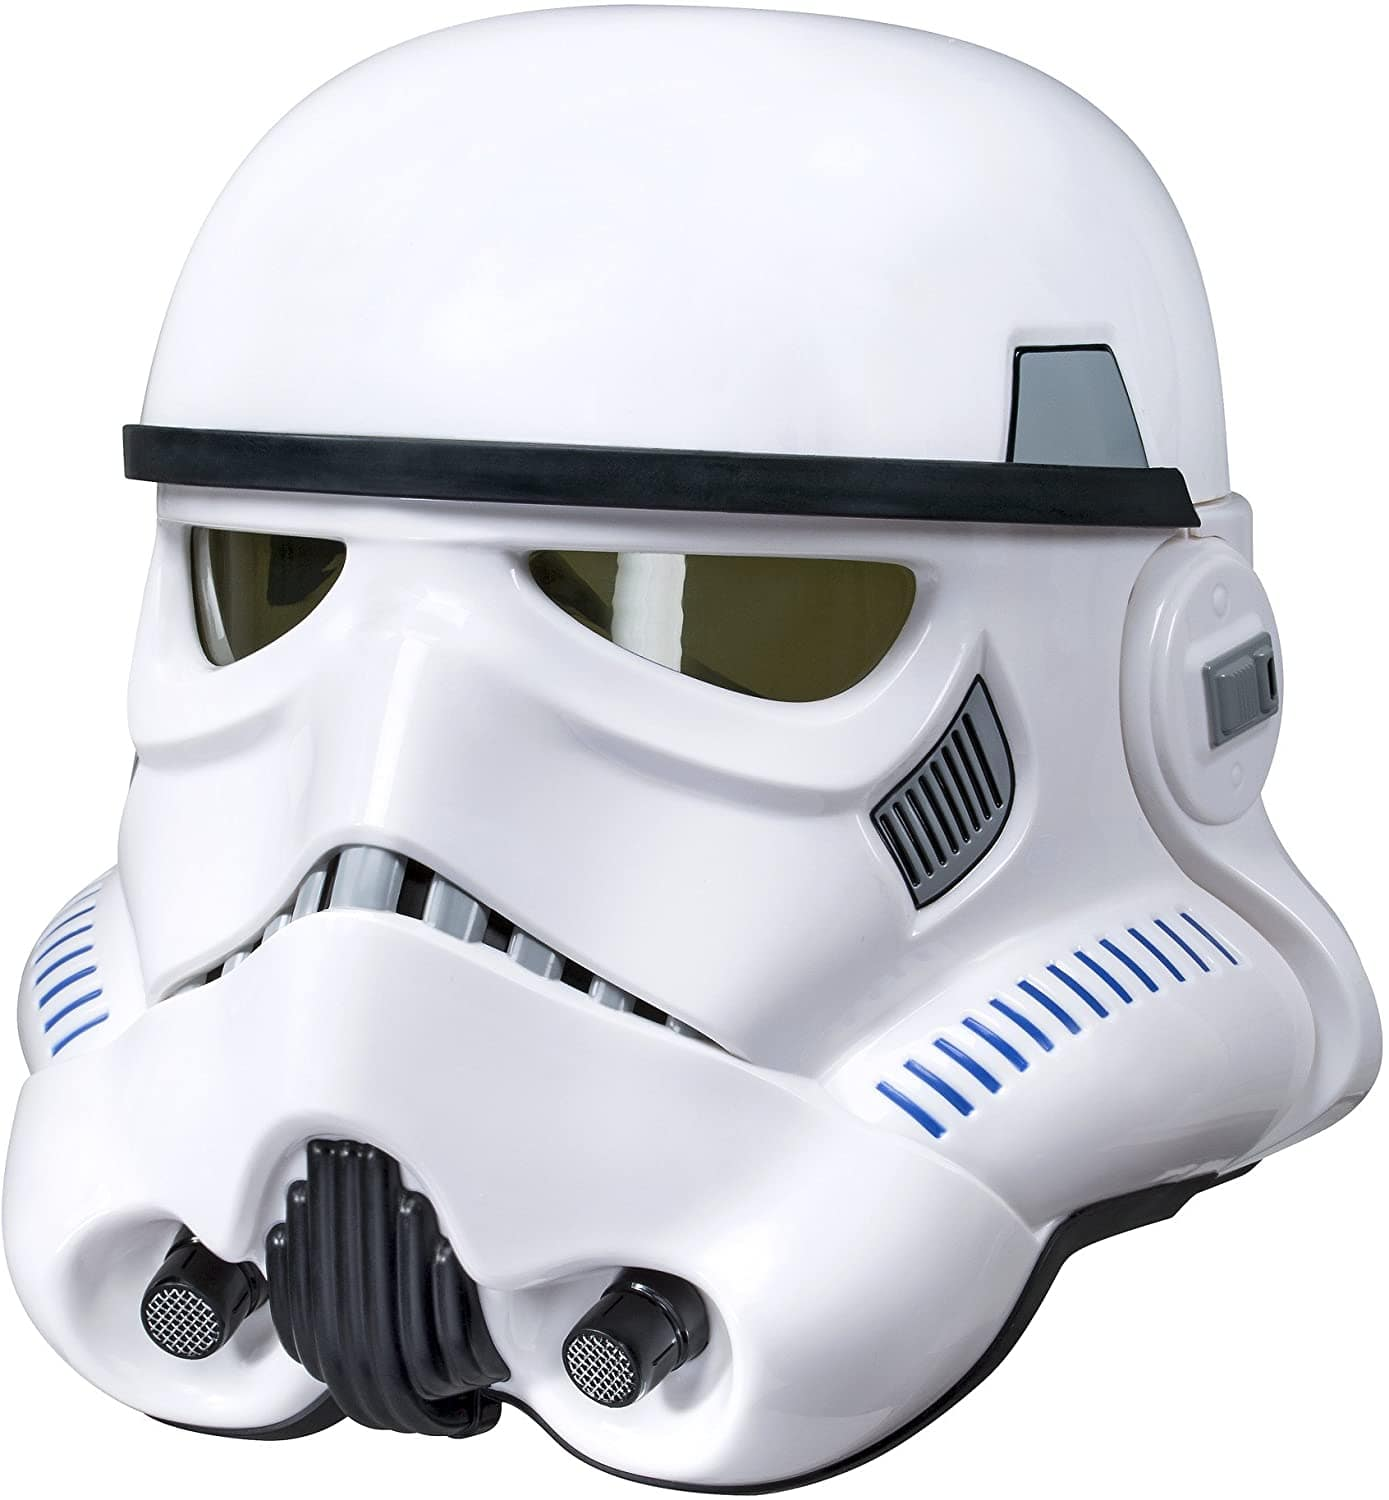 Star Wars The Black Series Rogue One: A Star Wars Story Imperial Stormtrooper Electronic Voice Changer Helmet (Amazon Exclusive) $79.32